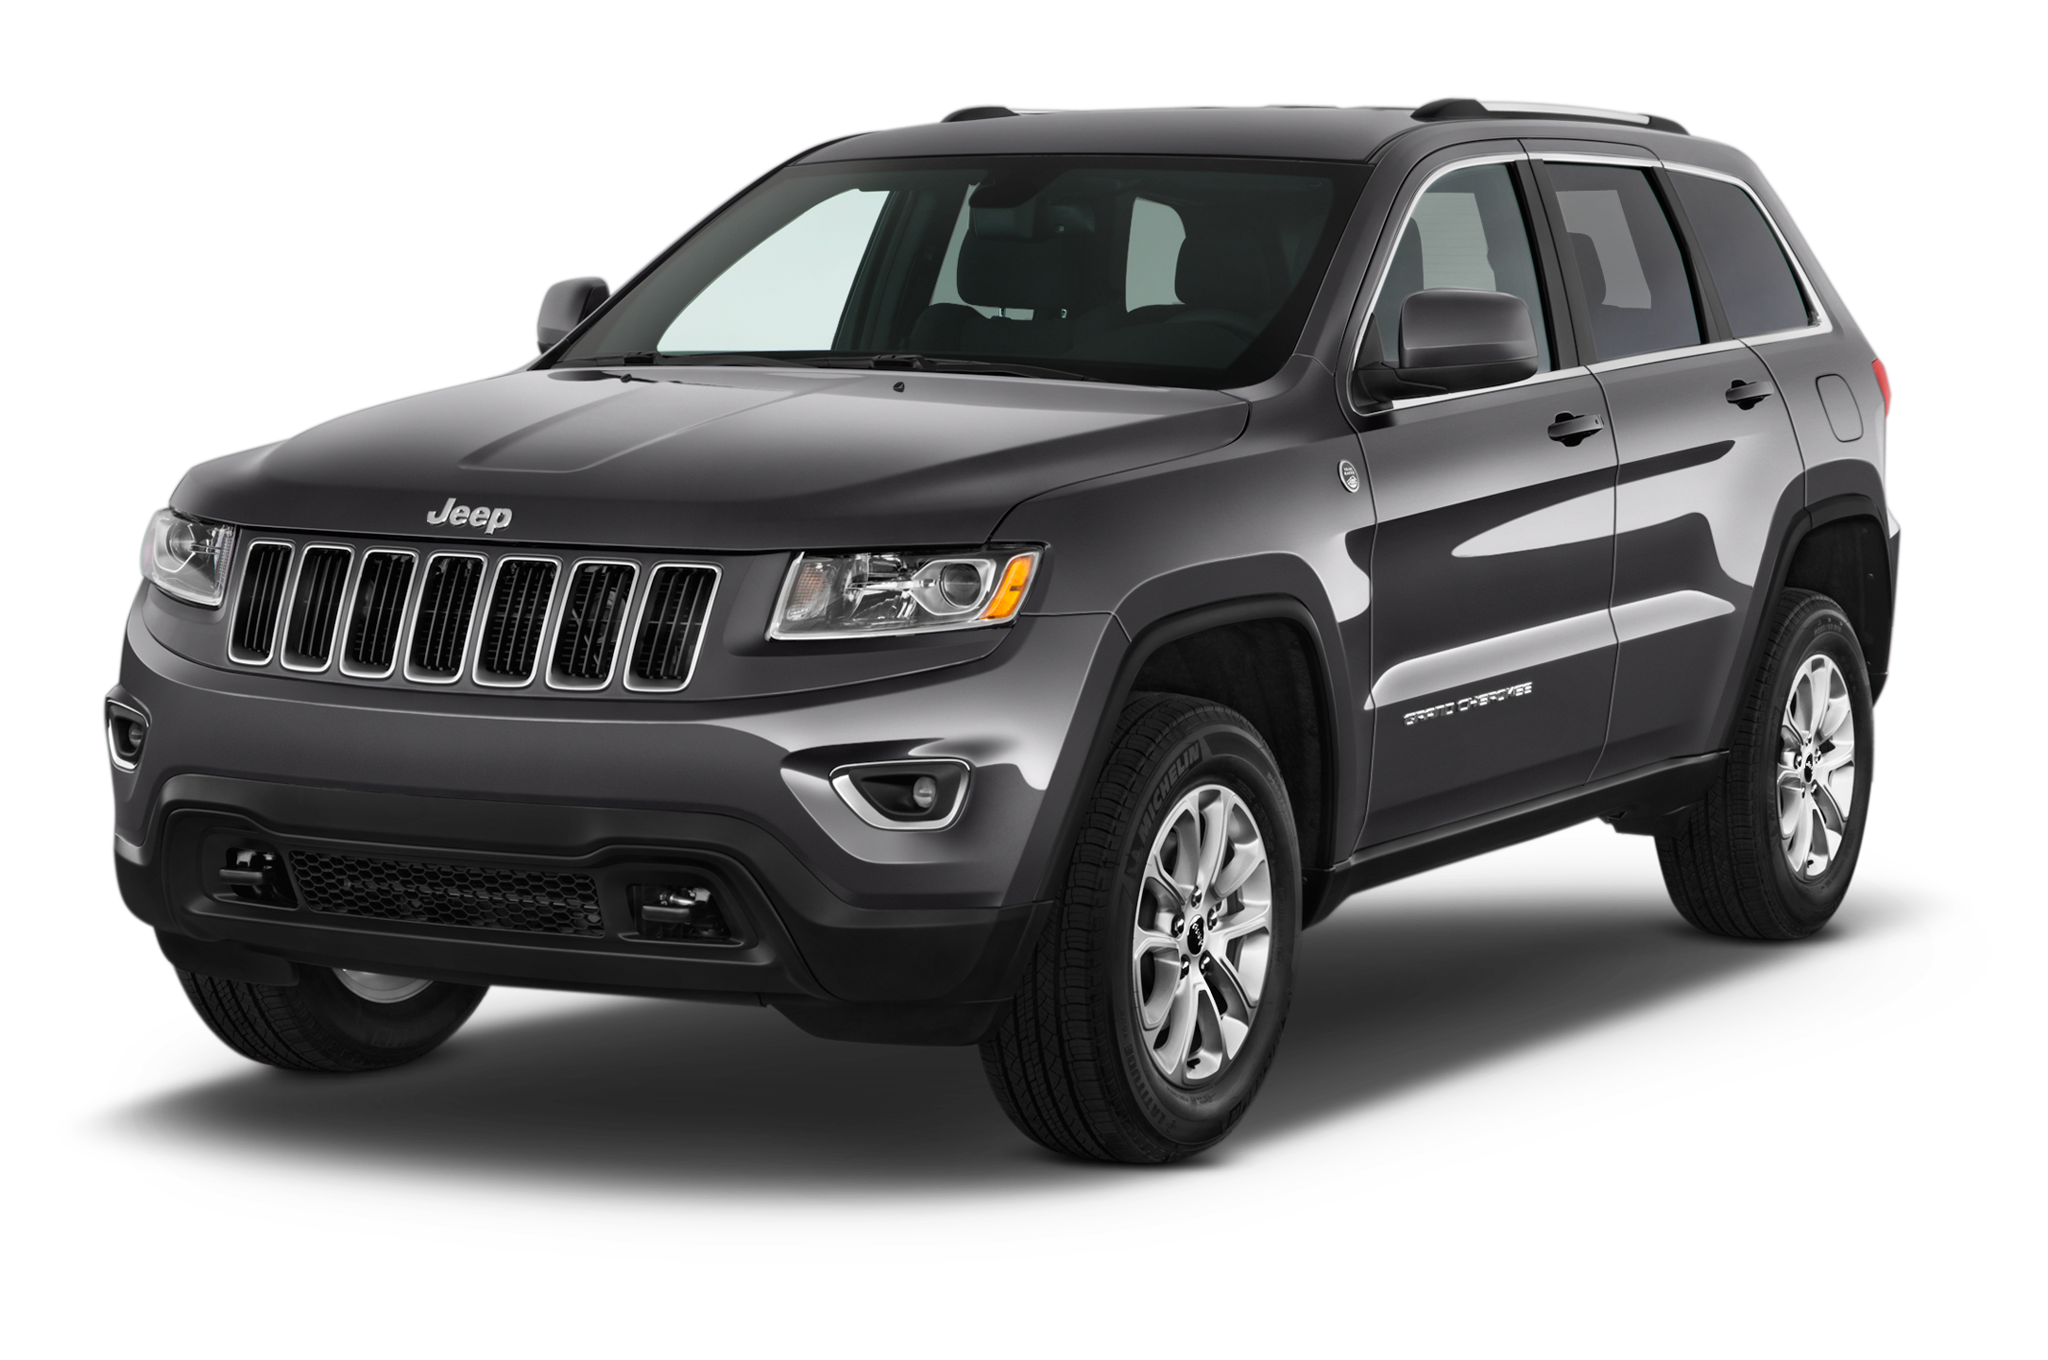 2014 jeep grand cherokee png. International price overview prices